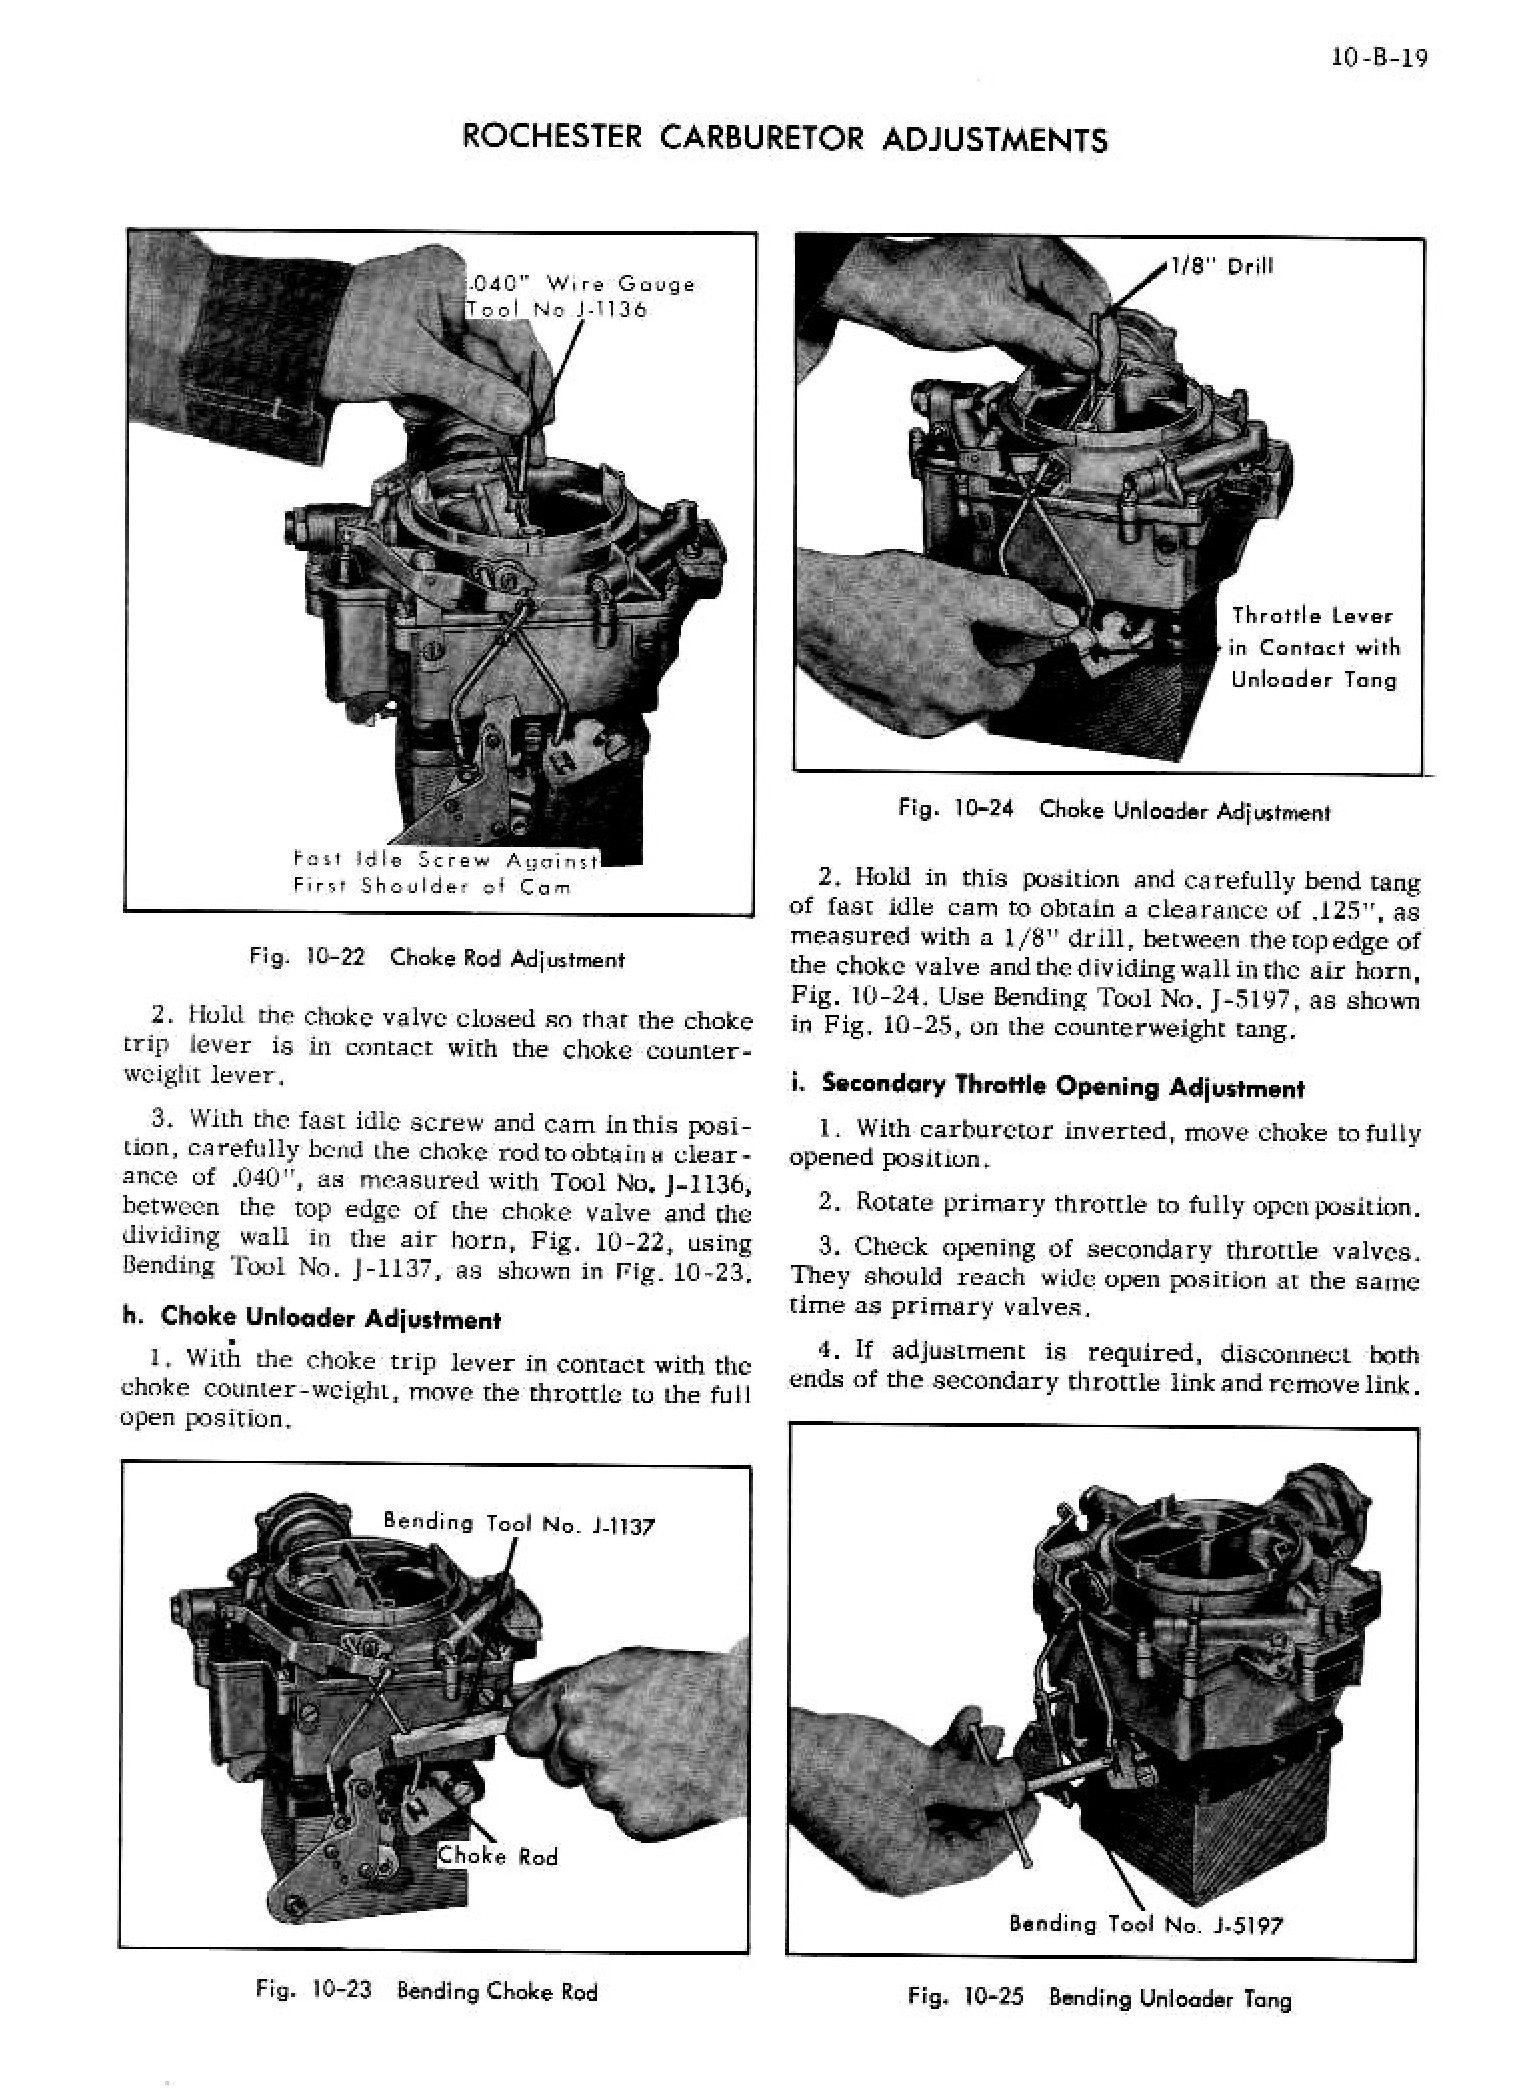 1956 Cadillac Shop Manual- Engine Fuel and Exhaust Page 19